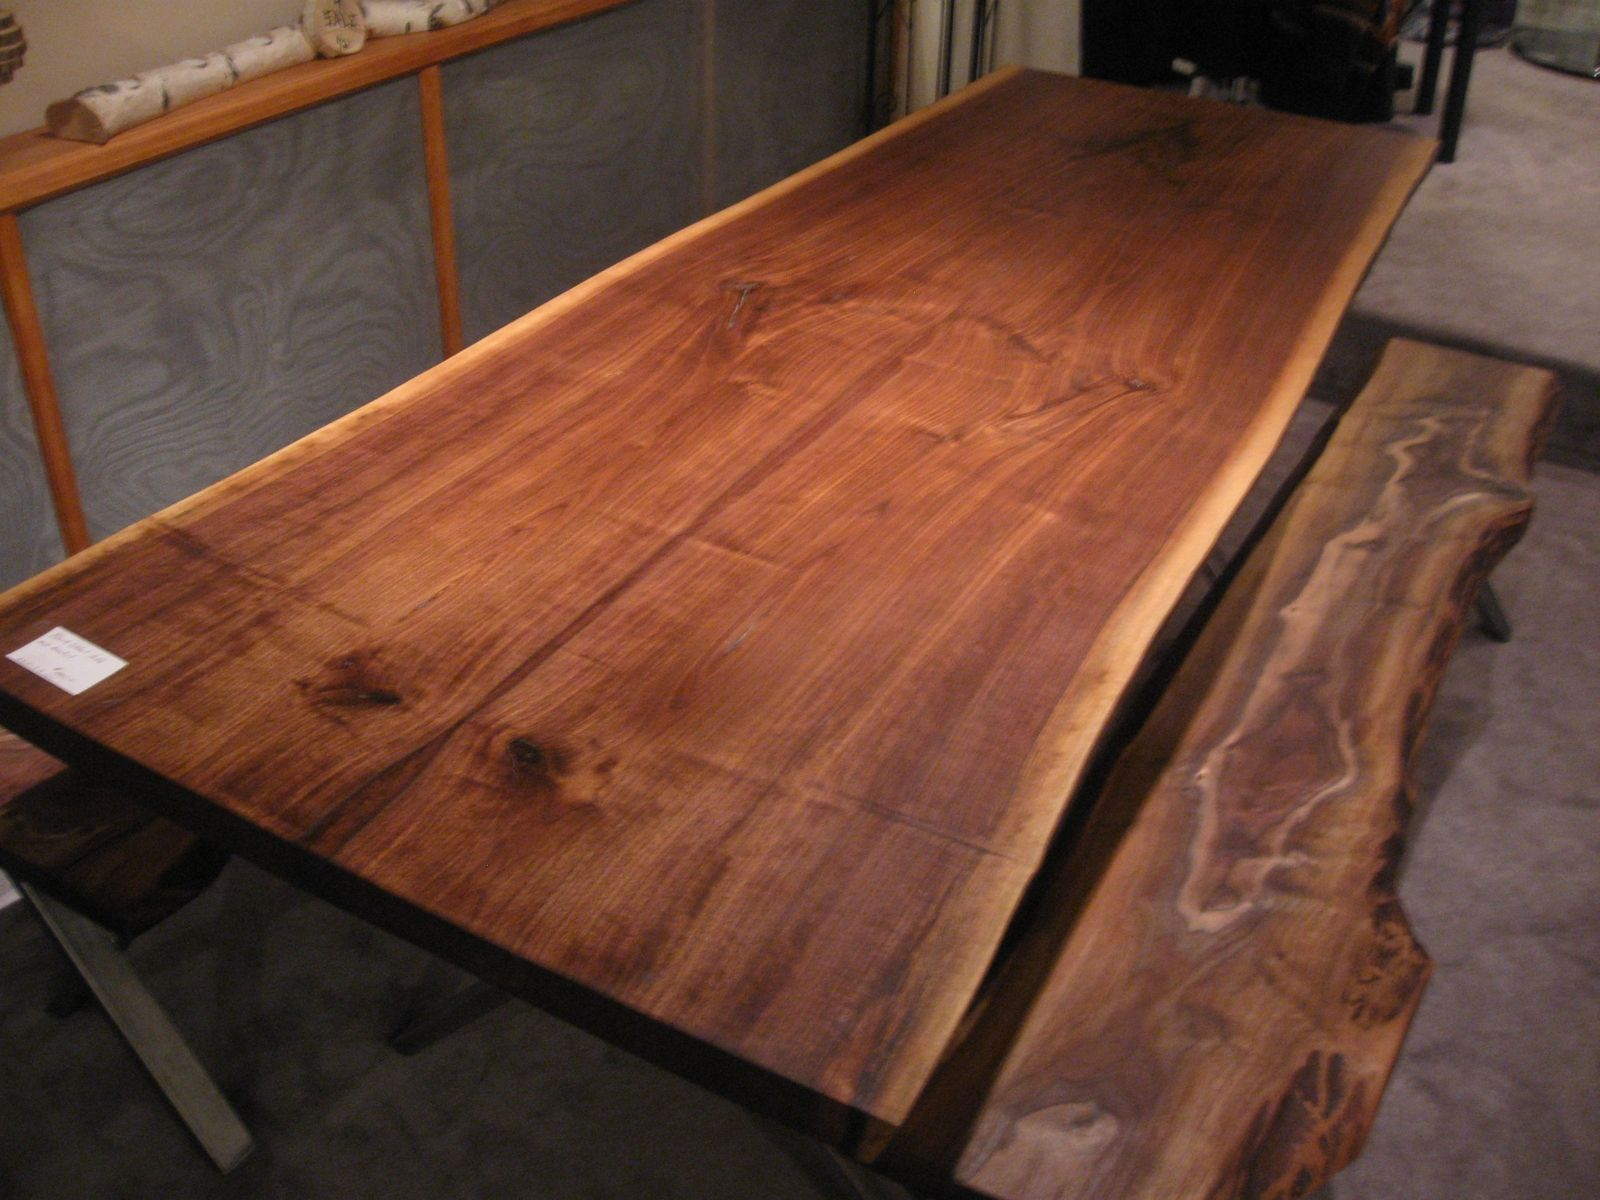 Walnut live edge dining table - Walnut Live Edge Slab X Base Table By Raffaele Colone